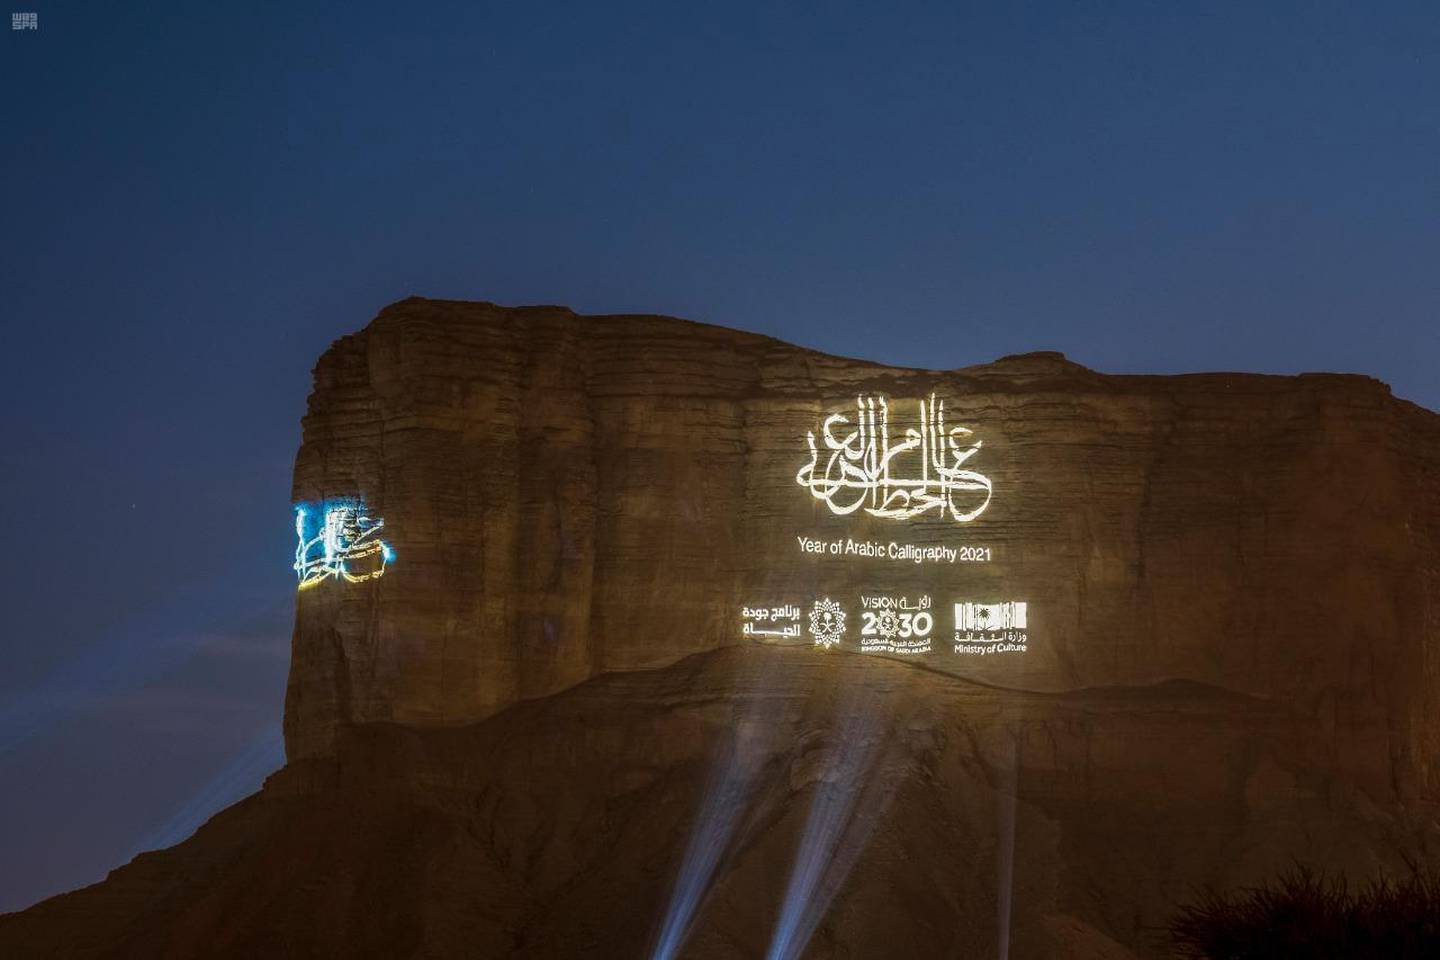 The Ministry of Culture celebrates the Arabic calligraphy at the summit of Mount Tuwaiq. SPA